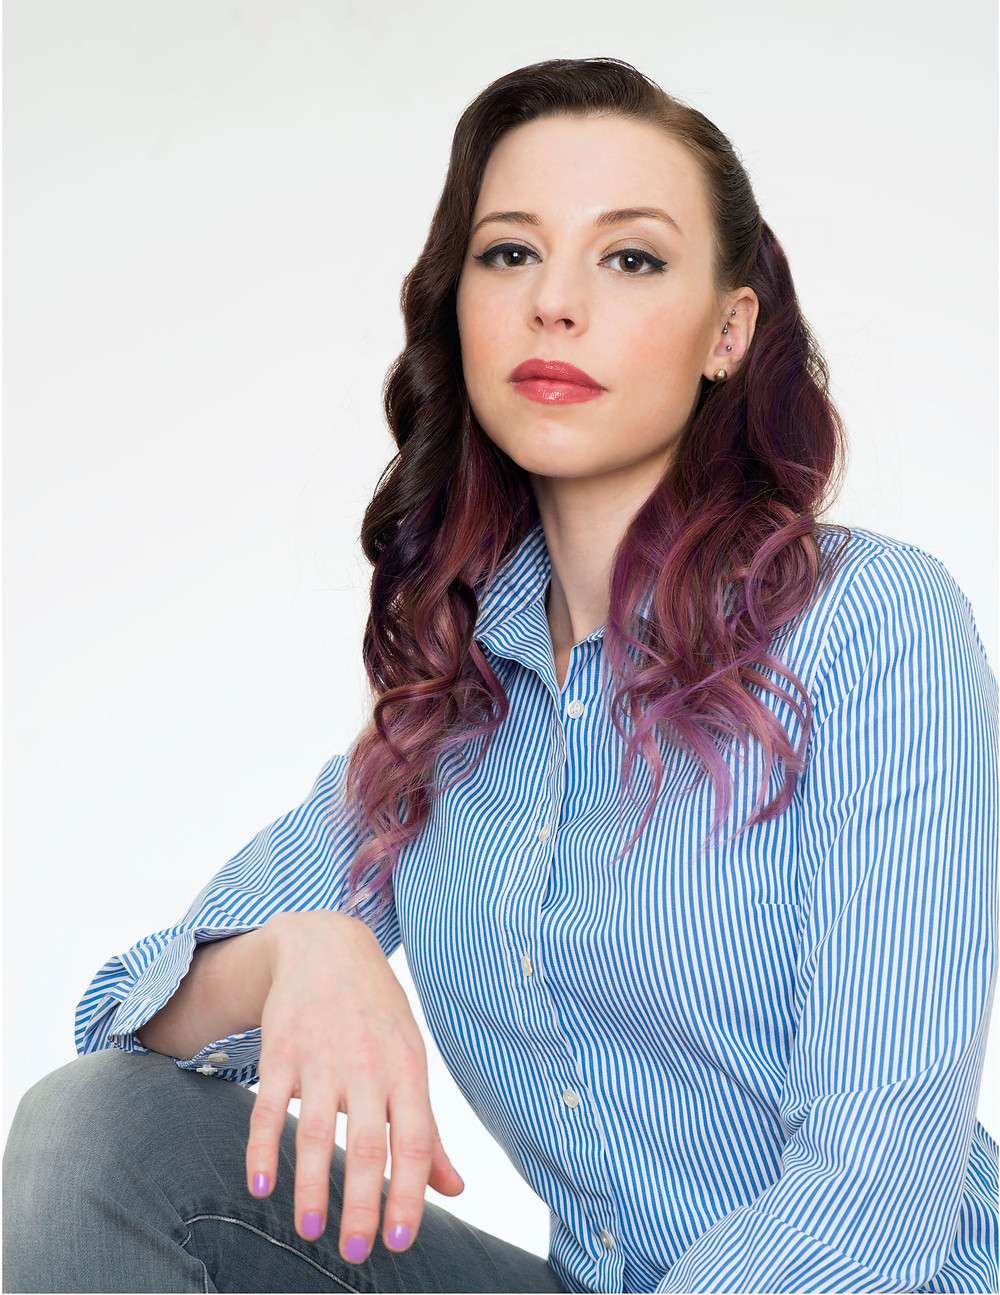 "OPEN SECRETS. Amber Baldet's team at J.P. Morgan built an open-source blockchain platform: ""The more free that sort of thing is, the better for us,"" she says. Photo: Benjamin Spradley"